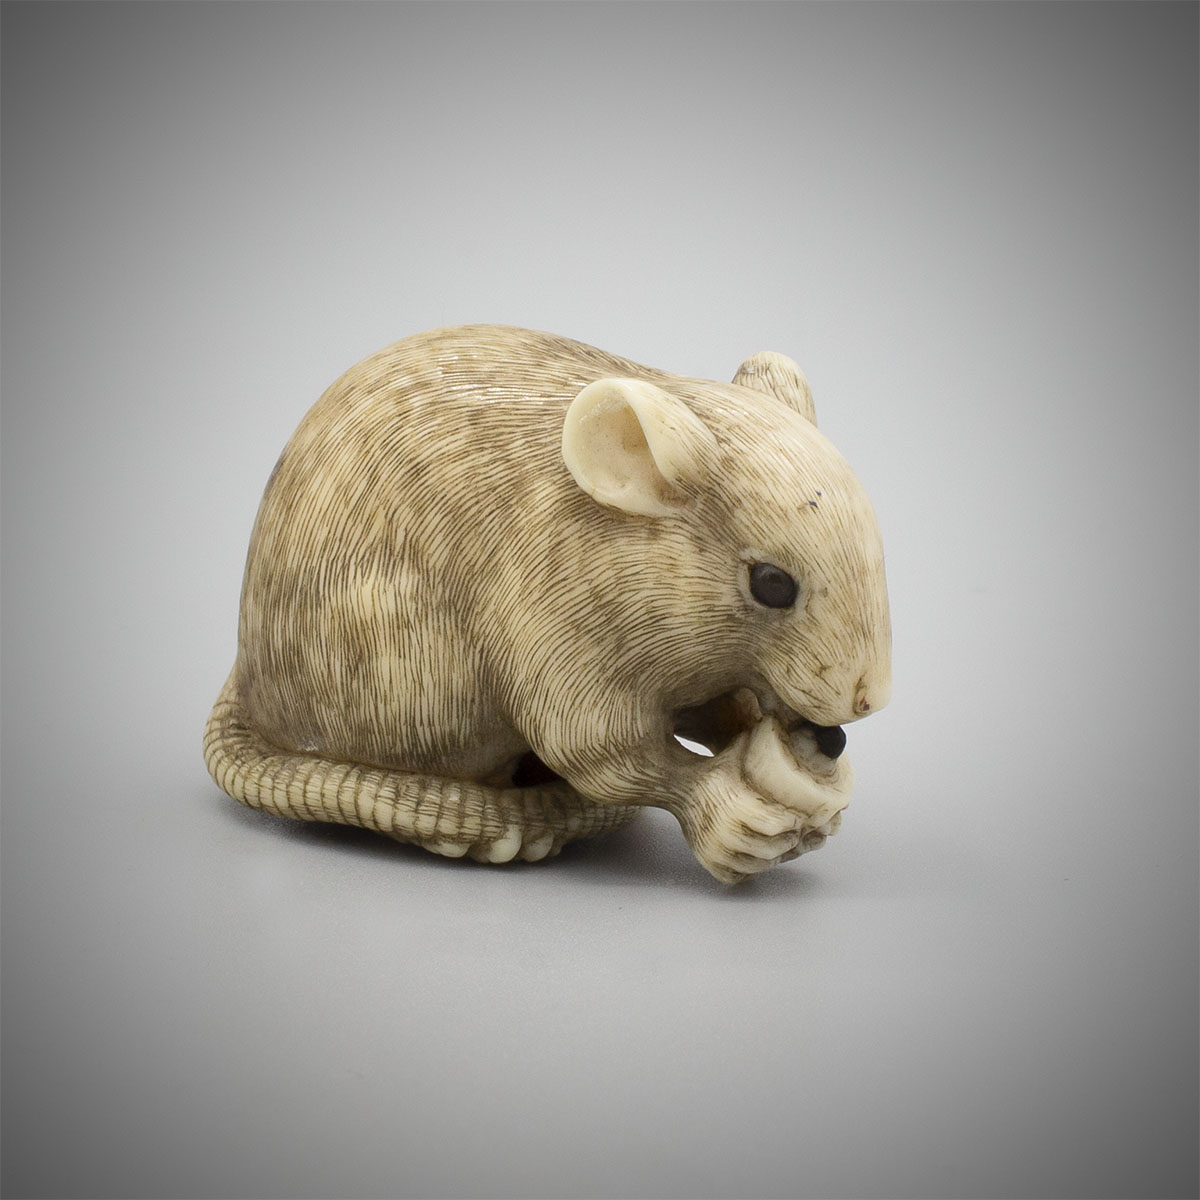 Ivory Netsuke of a Rat by Okatori, MR3573_v.1